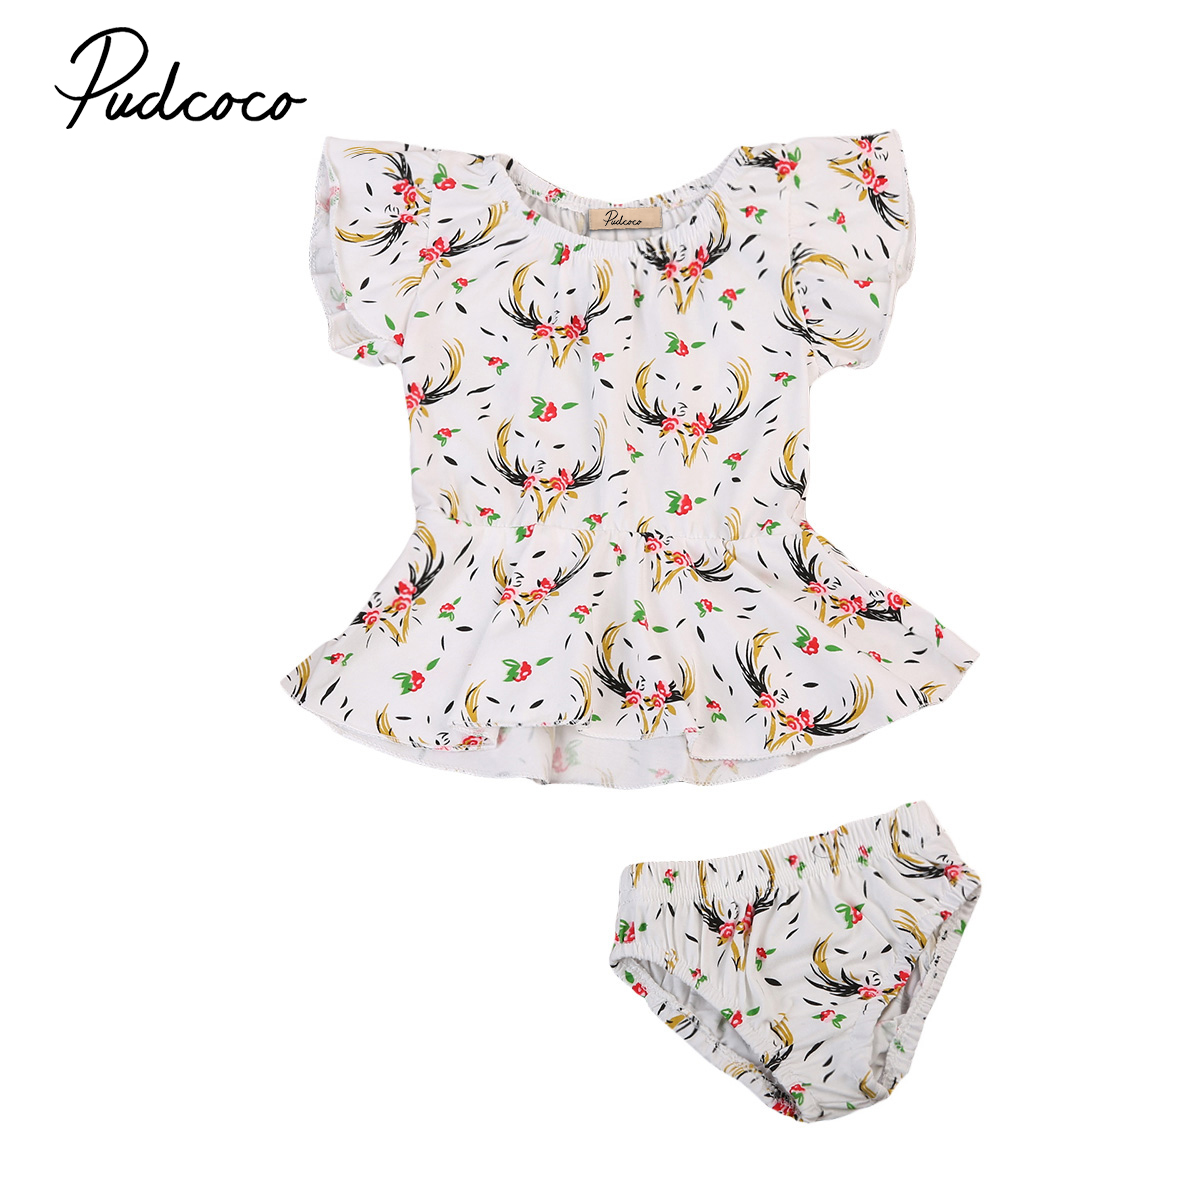 Pudcoco Newborn Baby Girls Deer Outfit Set Clothes Toddlers Cotton Sleeveles Cute Romper Jumpsuit+ Pants Shorts fashion 2pcs set newborn baby girls jumpsuit toddler girls flower pattern outfit clothes romper bodysuit pants